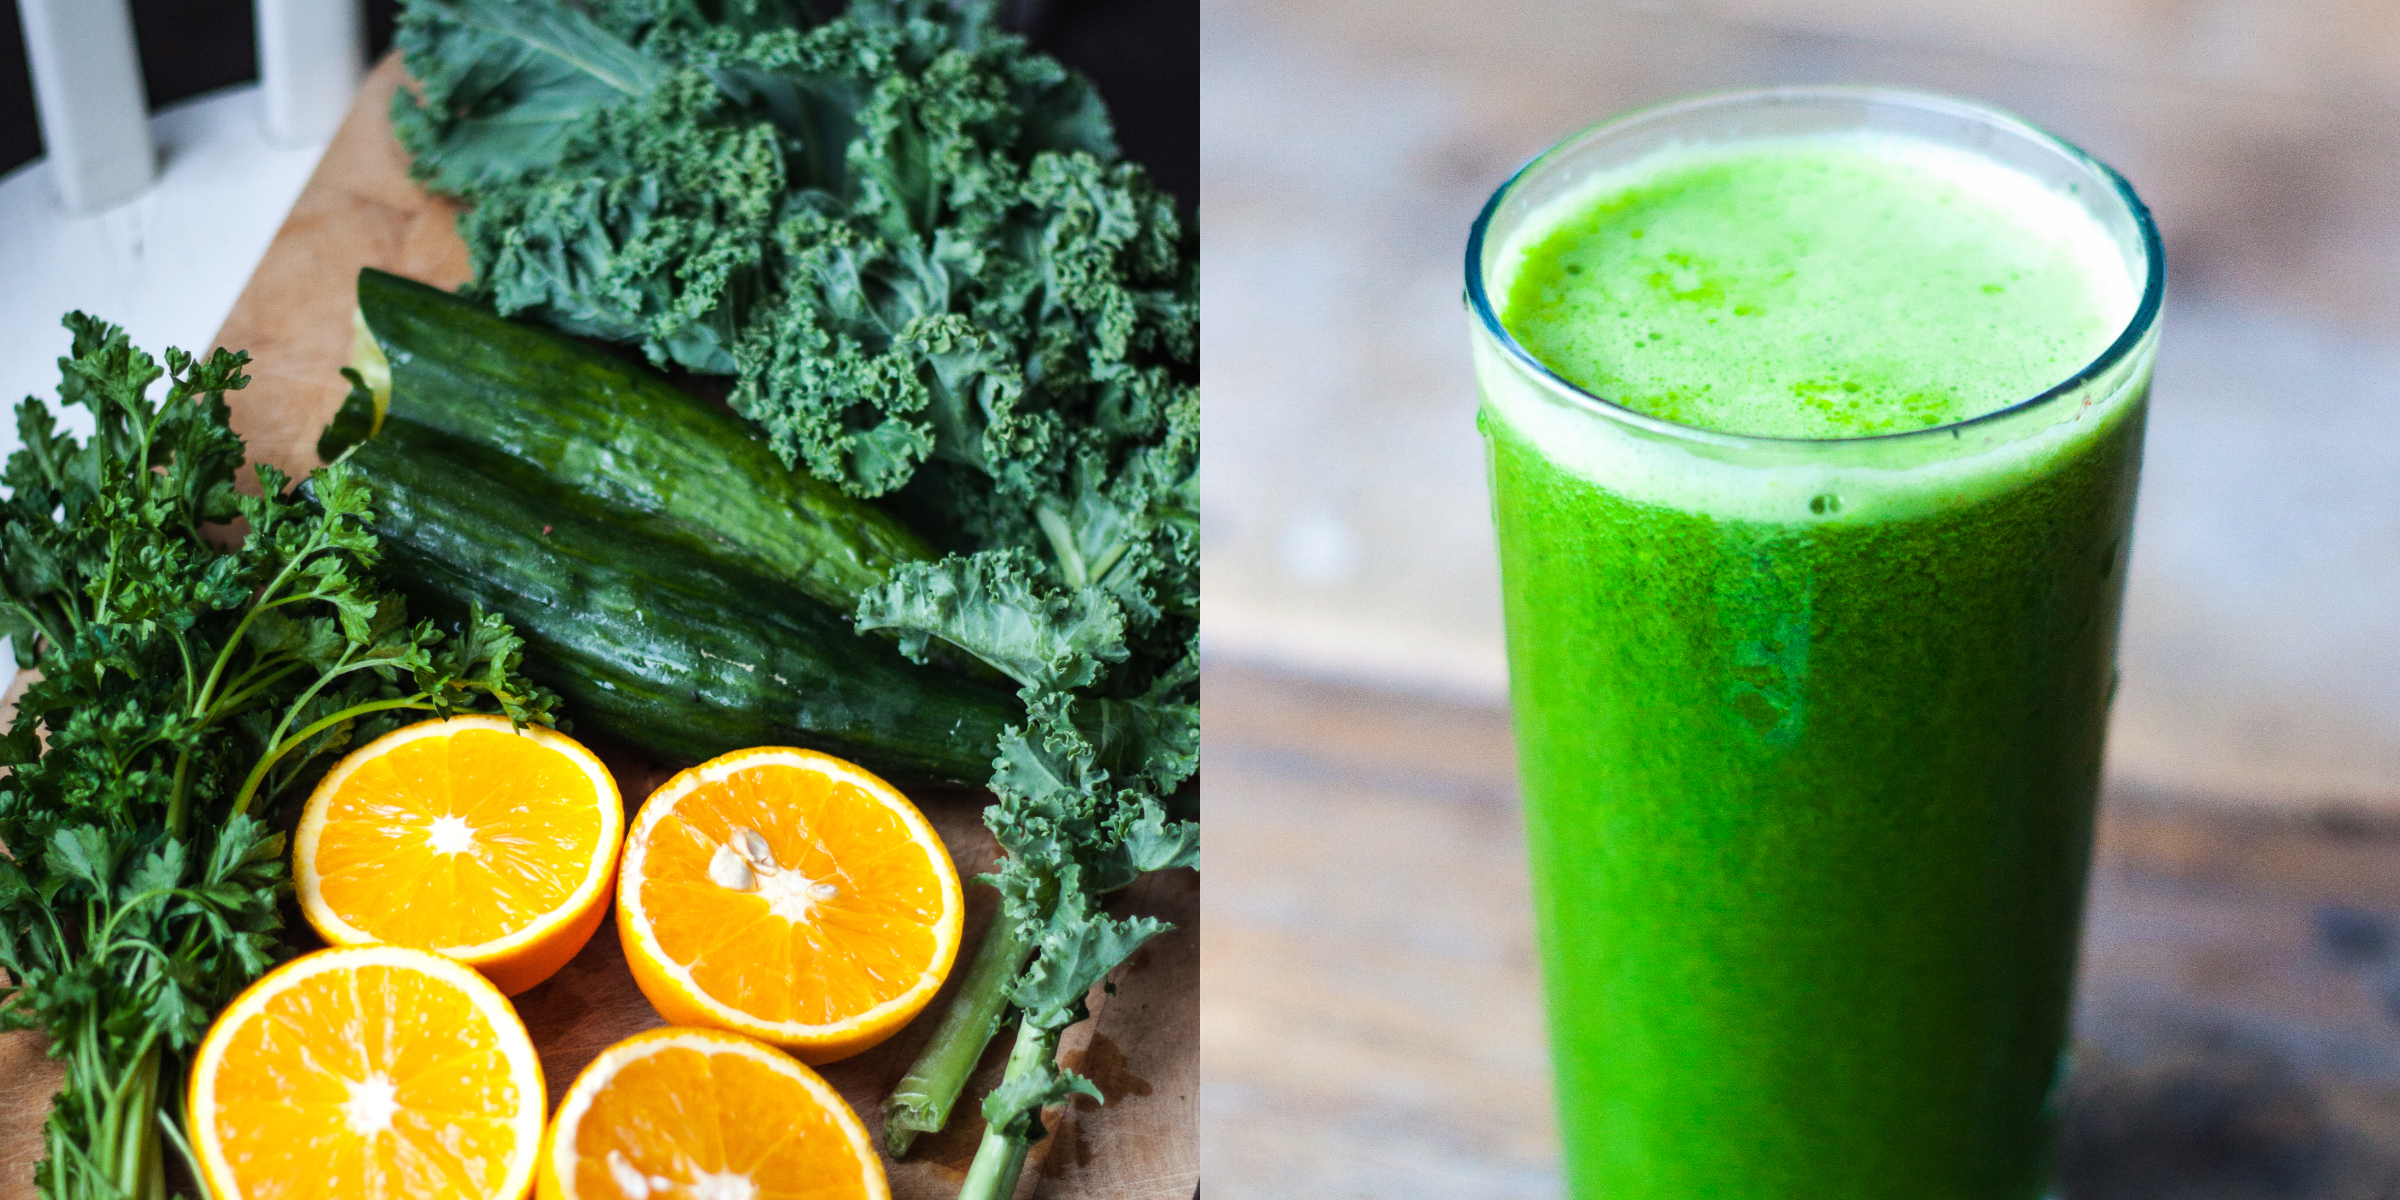 Juicy // Kale + Cucumber + Parsley + Oranges RosalieRuardy.com // FOOD, TRAvEL & HEALTH BLOG